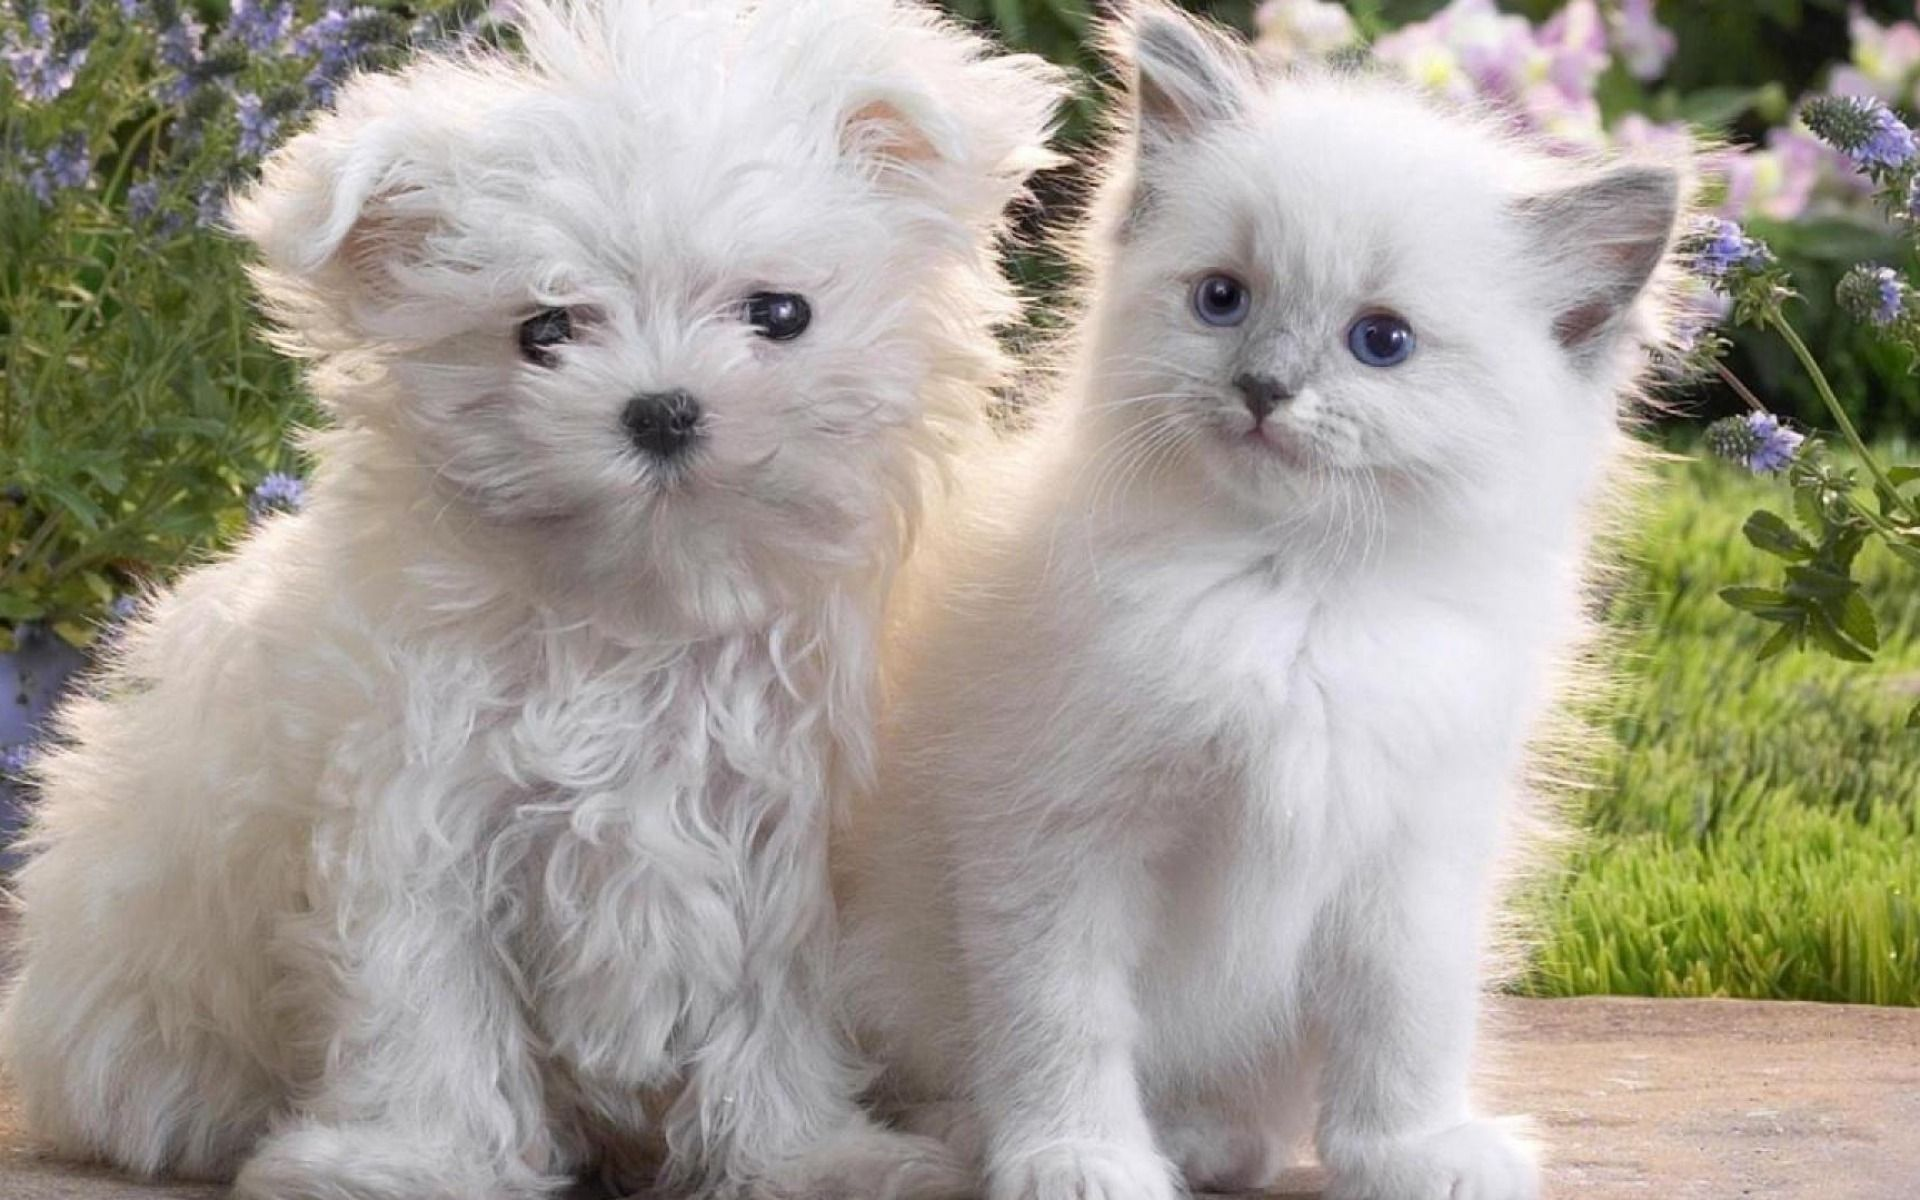 Beauty In White Cute Fluffy Cat Kitty Cats Kitten Kitties Dog Pupp Cute Puppies And Kittens Cute Cats And Dogs Cute Baby Animals